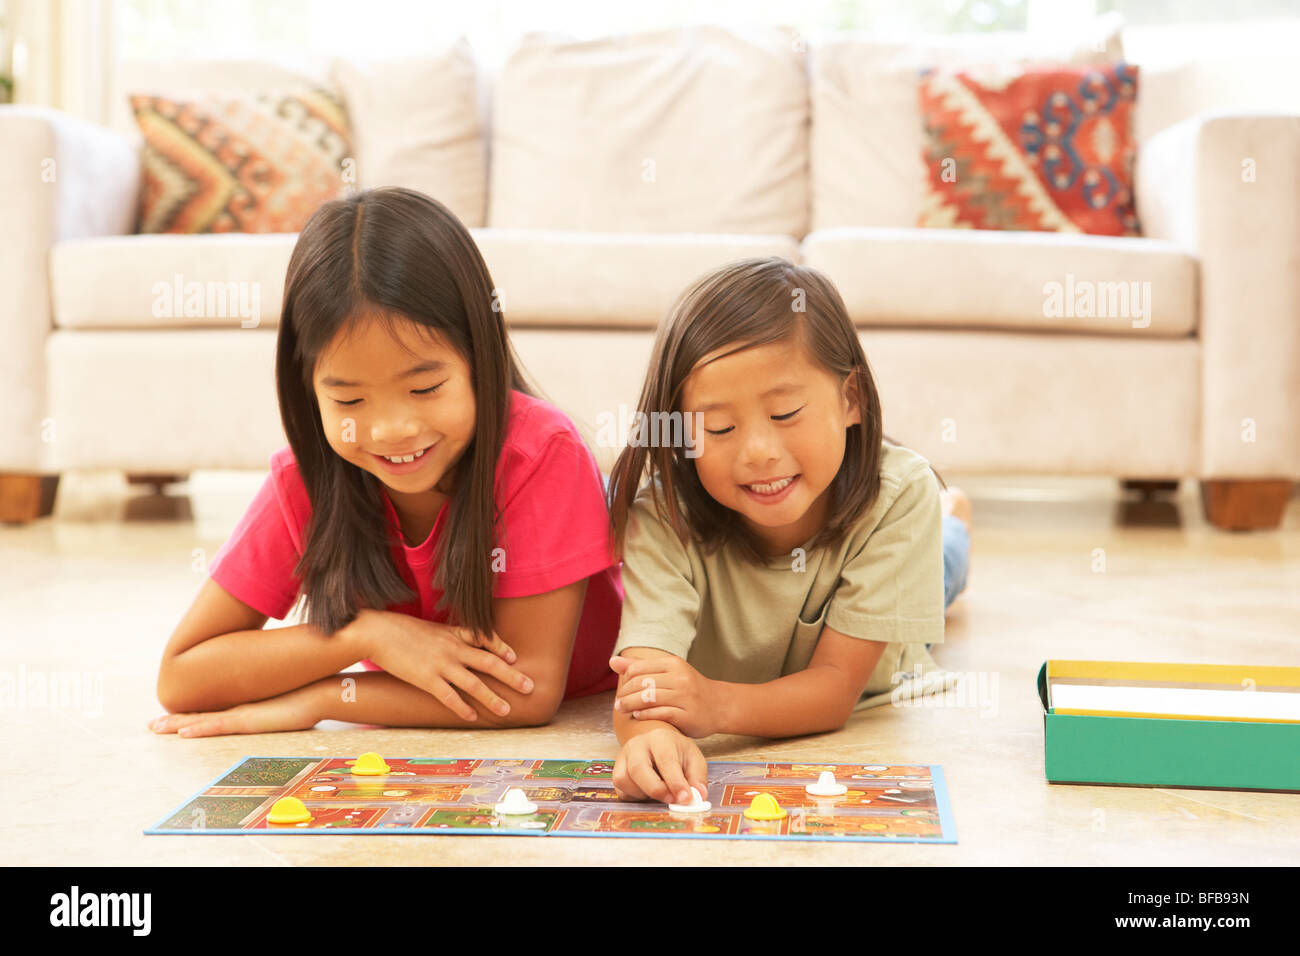 Two Girls Playing Board Game At Home - Stock Image